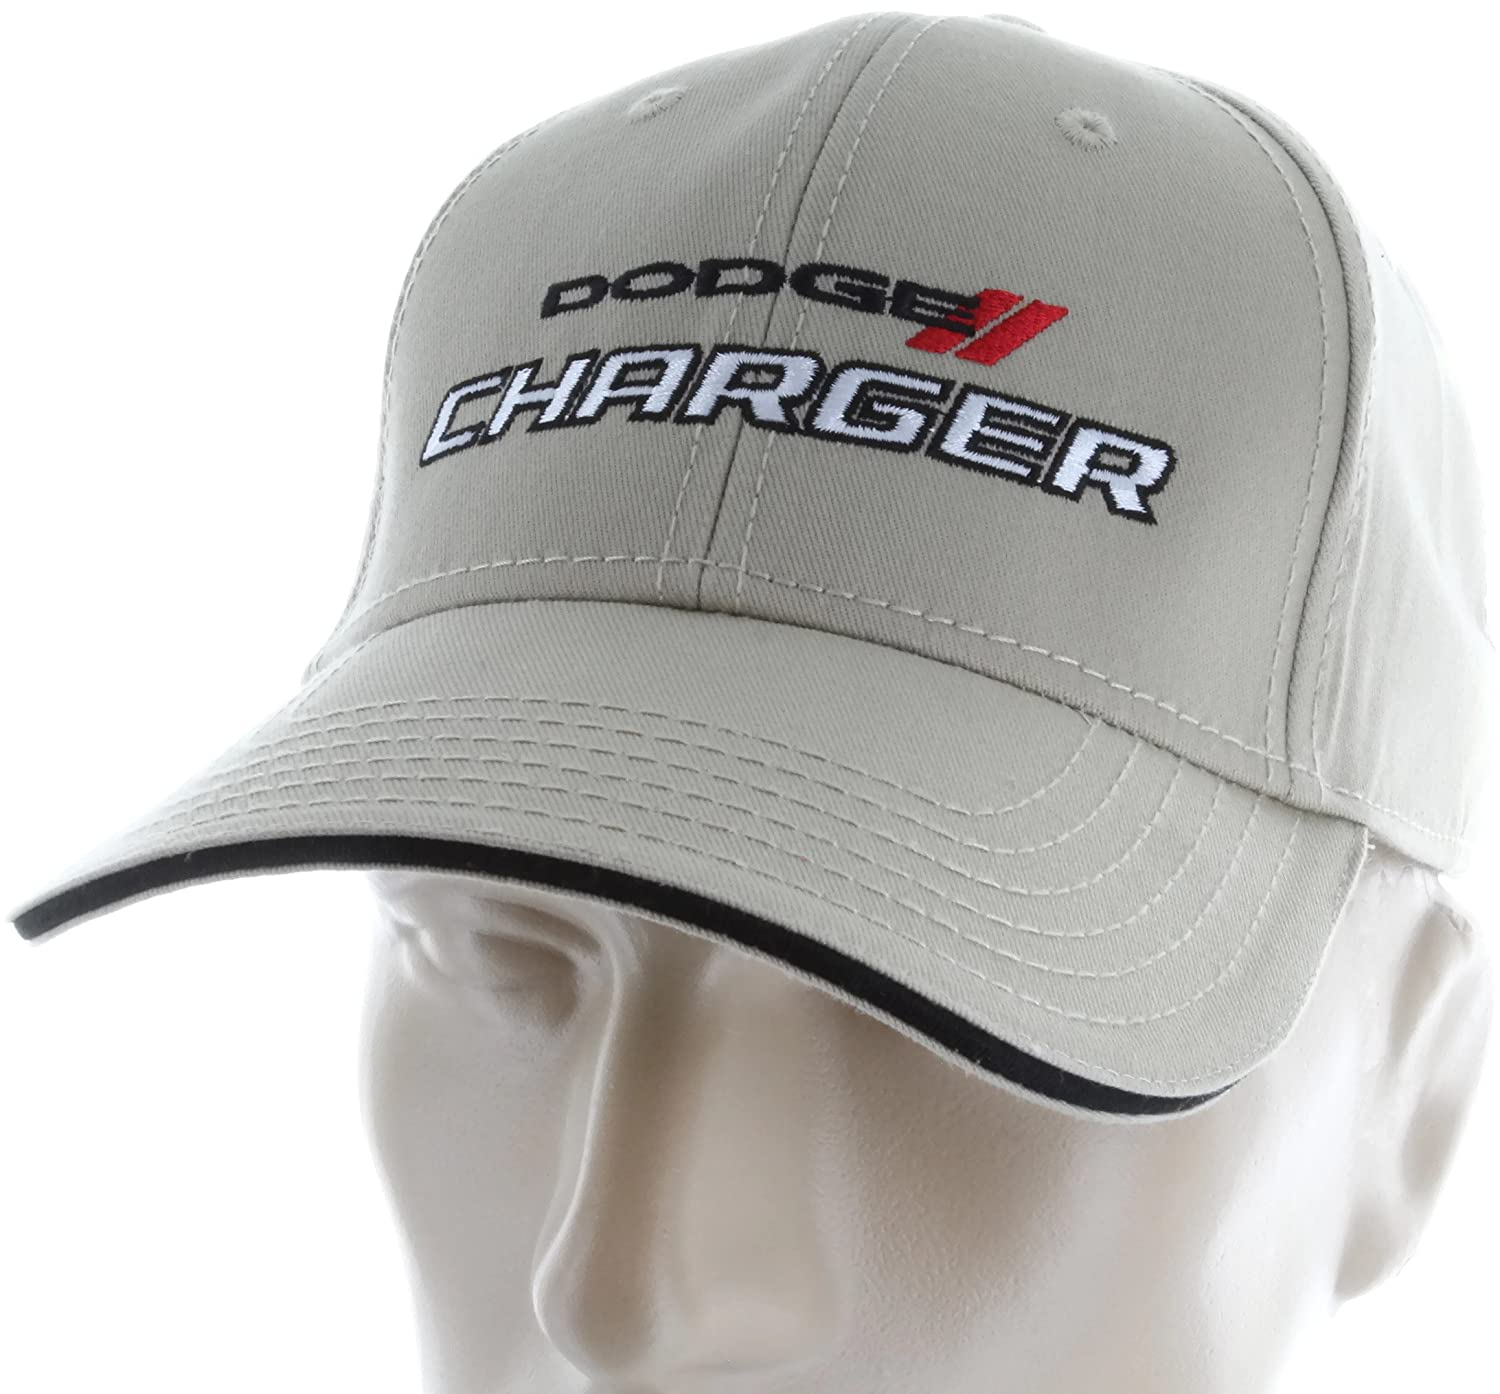 Dodge Charger RT Tan Baseball Cap Hat SRT Mopar DanteGTS